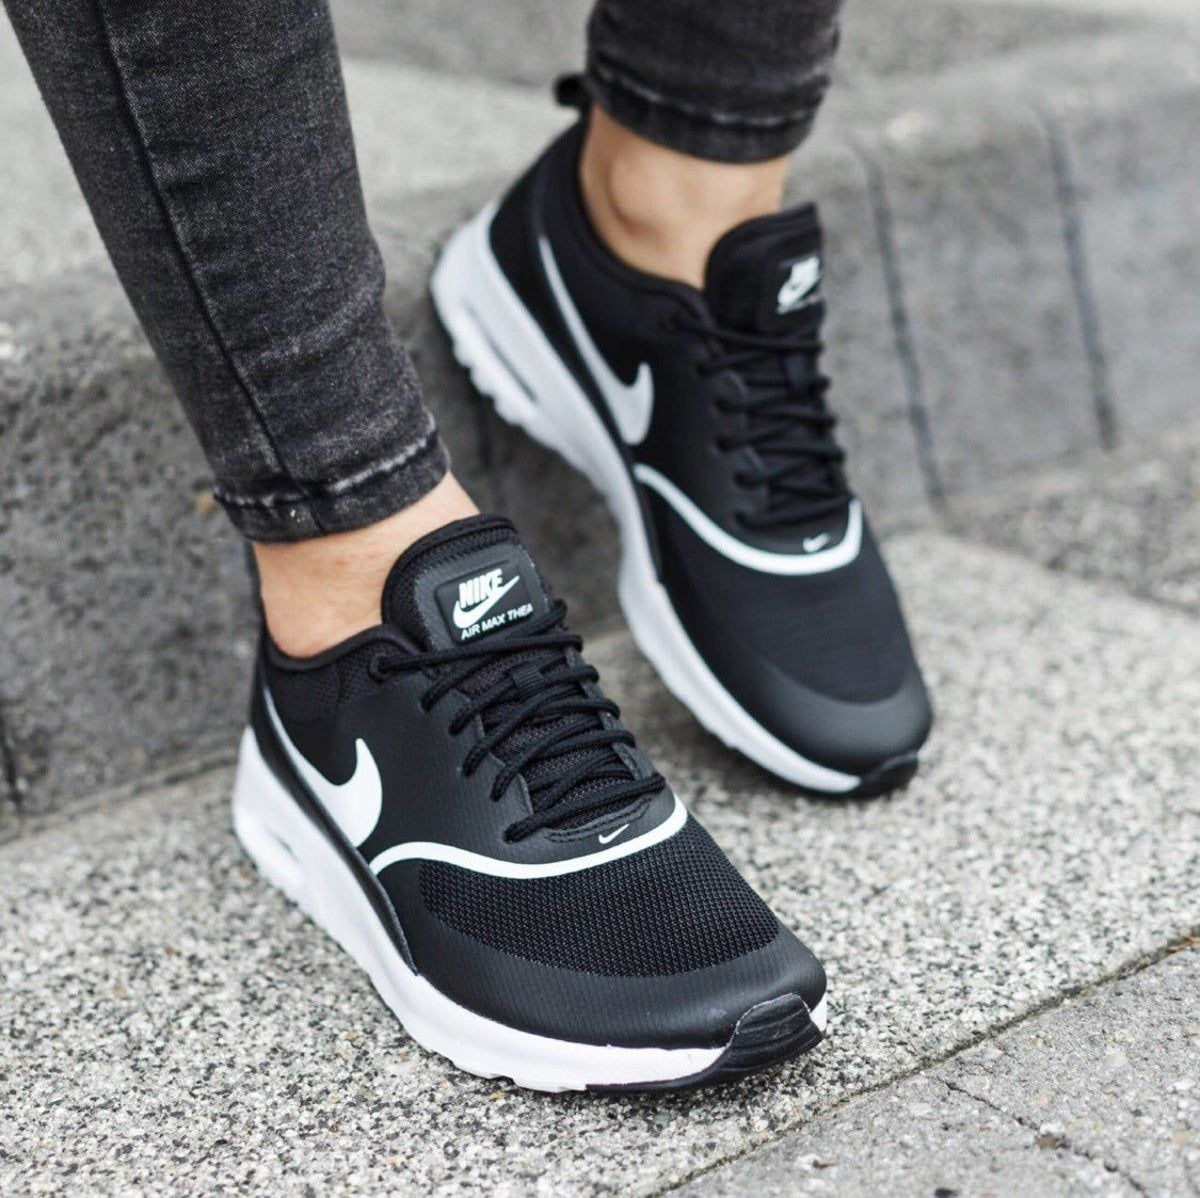 Women S Nike Air Max Thea Black Sneakers Nike Air Max Thea Black Nike Air Max Nike Air Max Thea Outfit